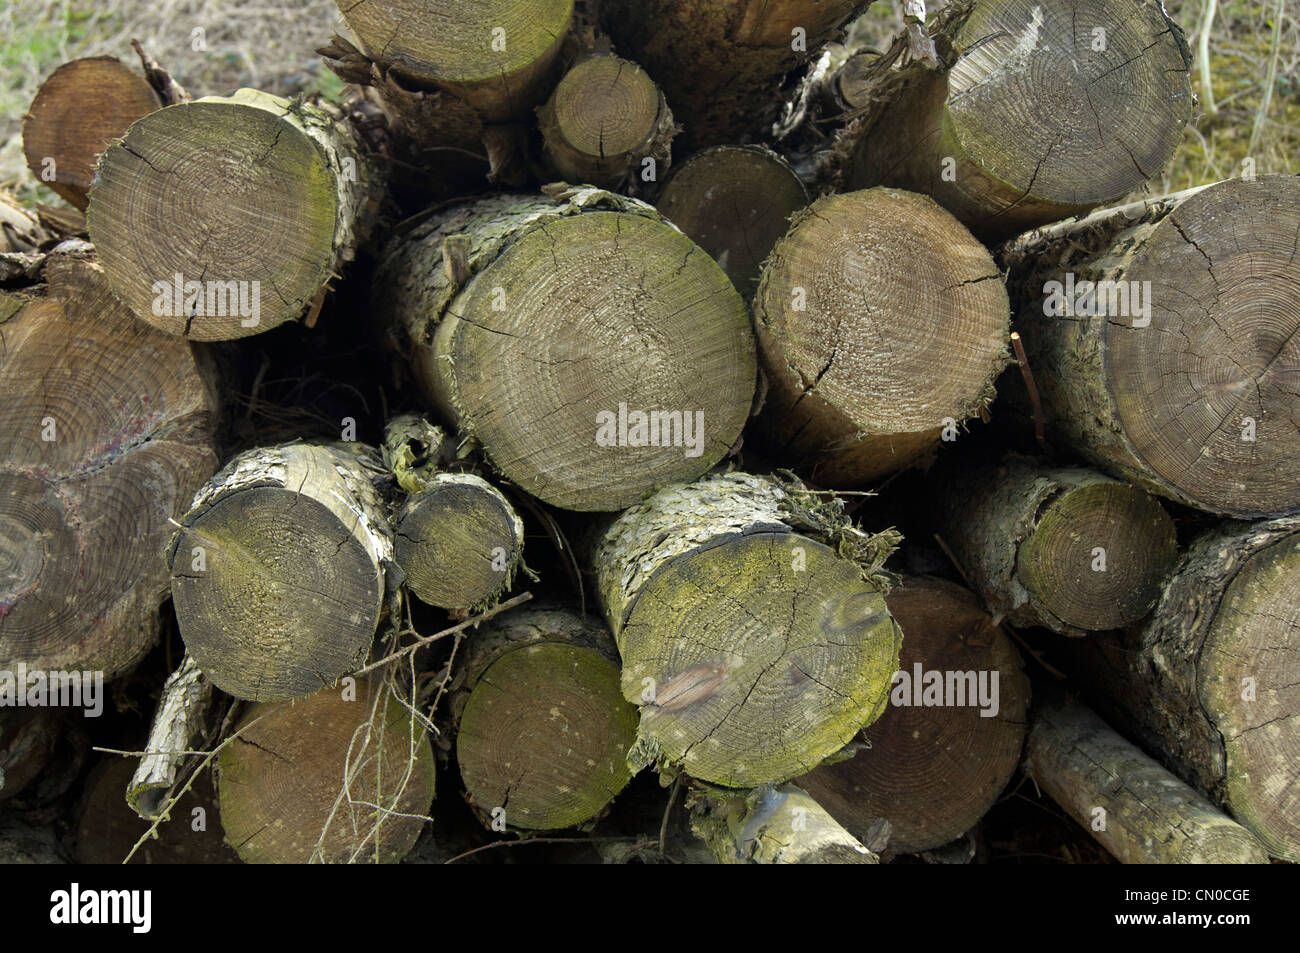 Pile of wood logs - Stock Image